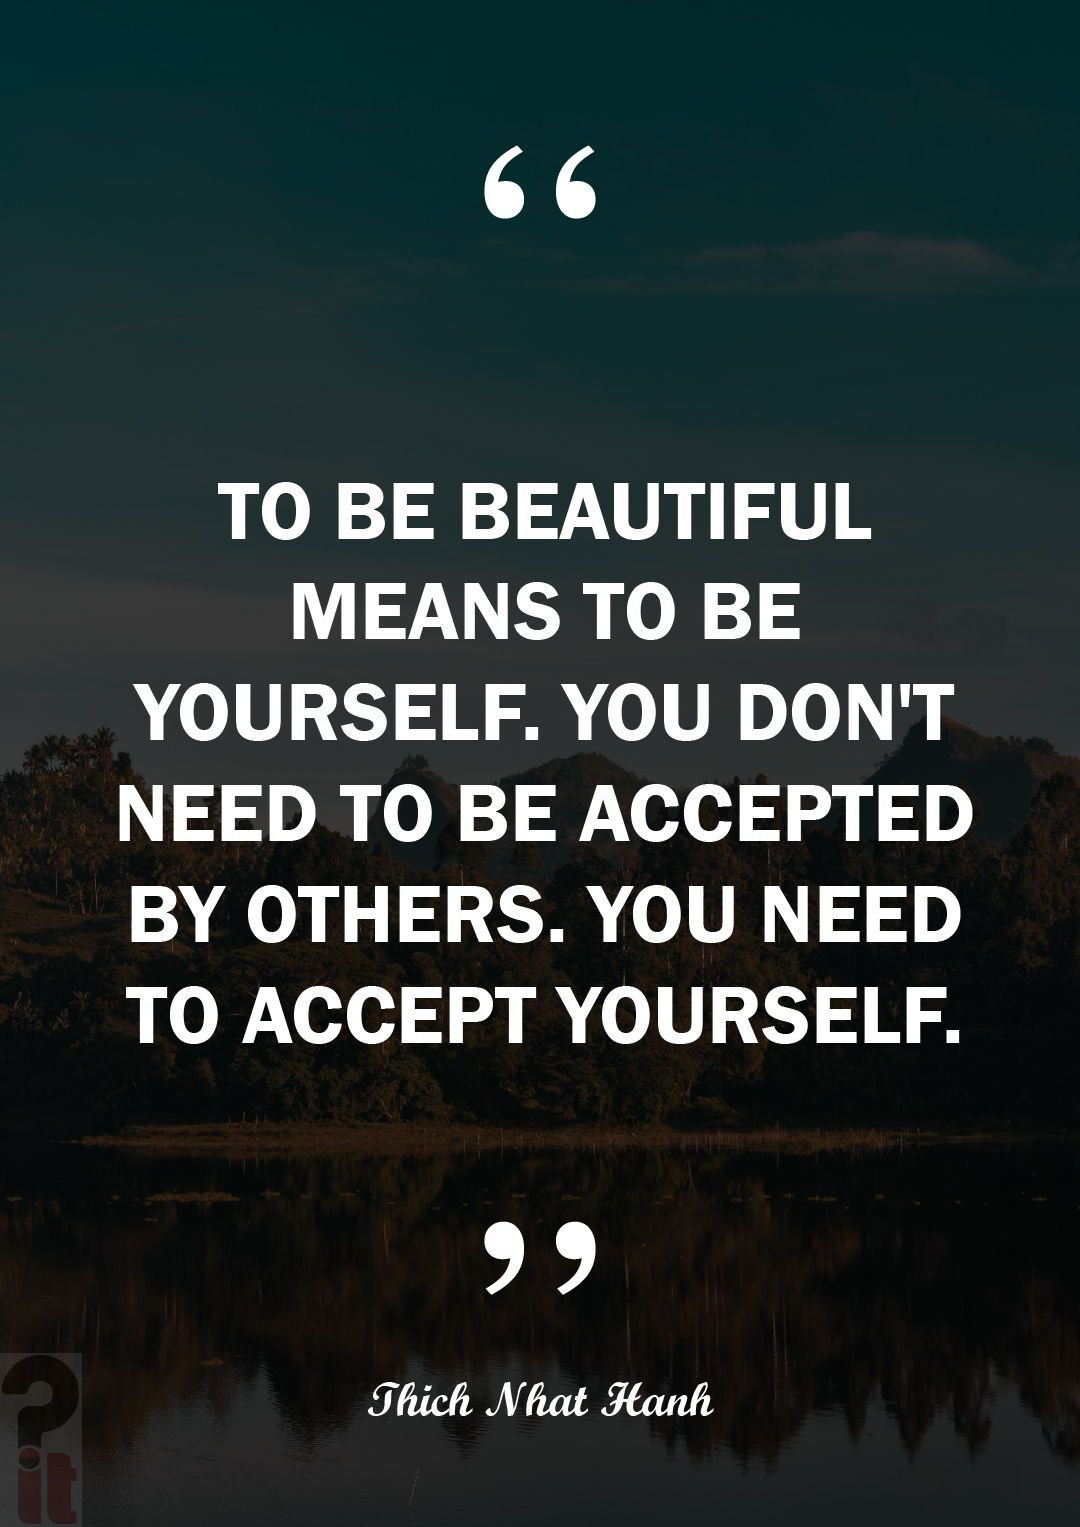 Self Acceptance Quote About Letting Go Relationships Life Moving Forward Differe In 2020 Acceptance Quotes Self Acceptance Quotes Acceptance Quotes Relationships